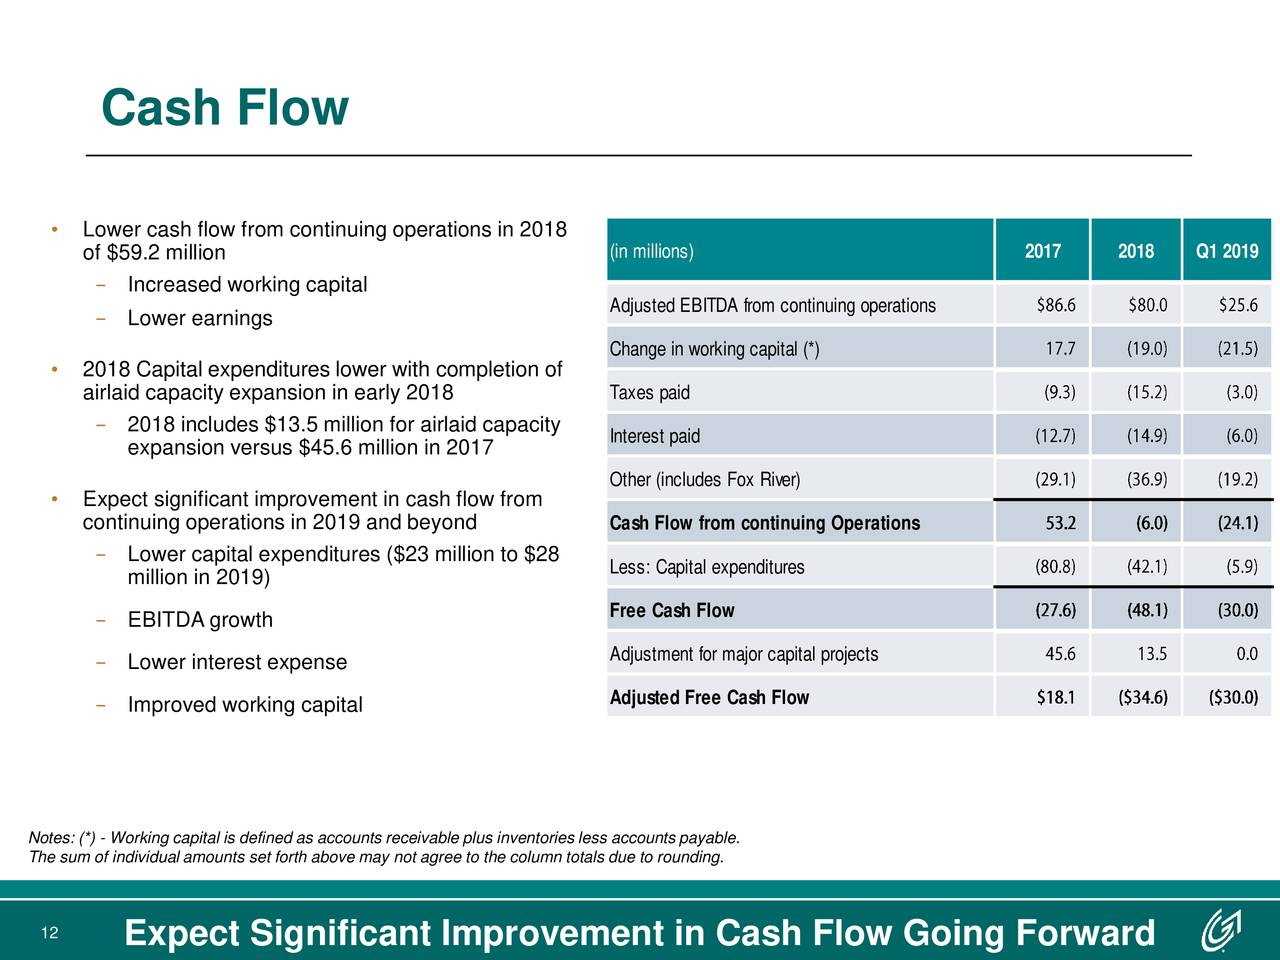 • Lower cash flow from continuing operations in 2018 of $59.2 million (in millions) 2017 2018 Q1 2019 − Increased working capital Adjusted EBITDA from continuing operations − Lower earnings Change in working capital (*) • 2018 Capital expenditures lower with completion of airlaid capacity expansion in early 2018 Taxes paid − 2018 includes $13.5 million for airlaid capacity Interest paid expansion versus $45.6 million in 2017 Other (includes Fox River) • Expect significant improvement in cash flow from continuing operations in 2019 and beyond Cash Flow from continuing Operations − Lower capital expenditures ($23 million to $28 Less: Capital expenditures million in 2019) − EBITDA growth Free Cash Flow − Lower interest expense Adjustment for major capital projects − Improved working capital Adjusted Free Cash Flow Notes: (*) - Working capital is defined as accounts receivable plus inventories less accounts payable. The sum of individual amounts set forth above may not agree to the column totals due to rounding. 12 Expect Significant Improvement in Cash Flow Going Forward